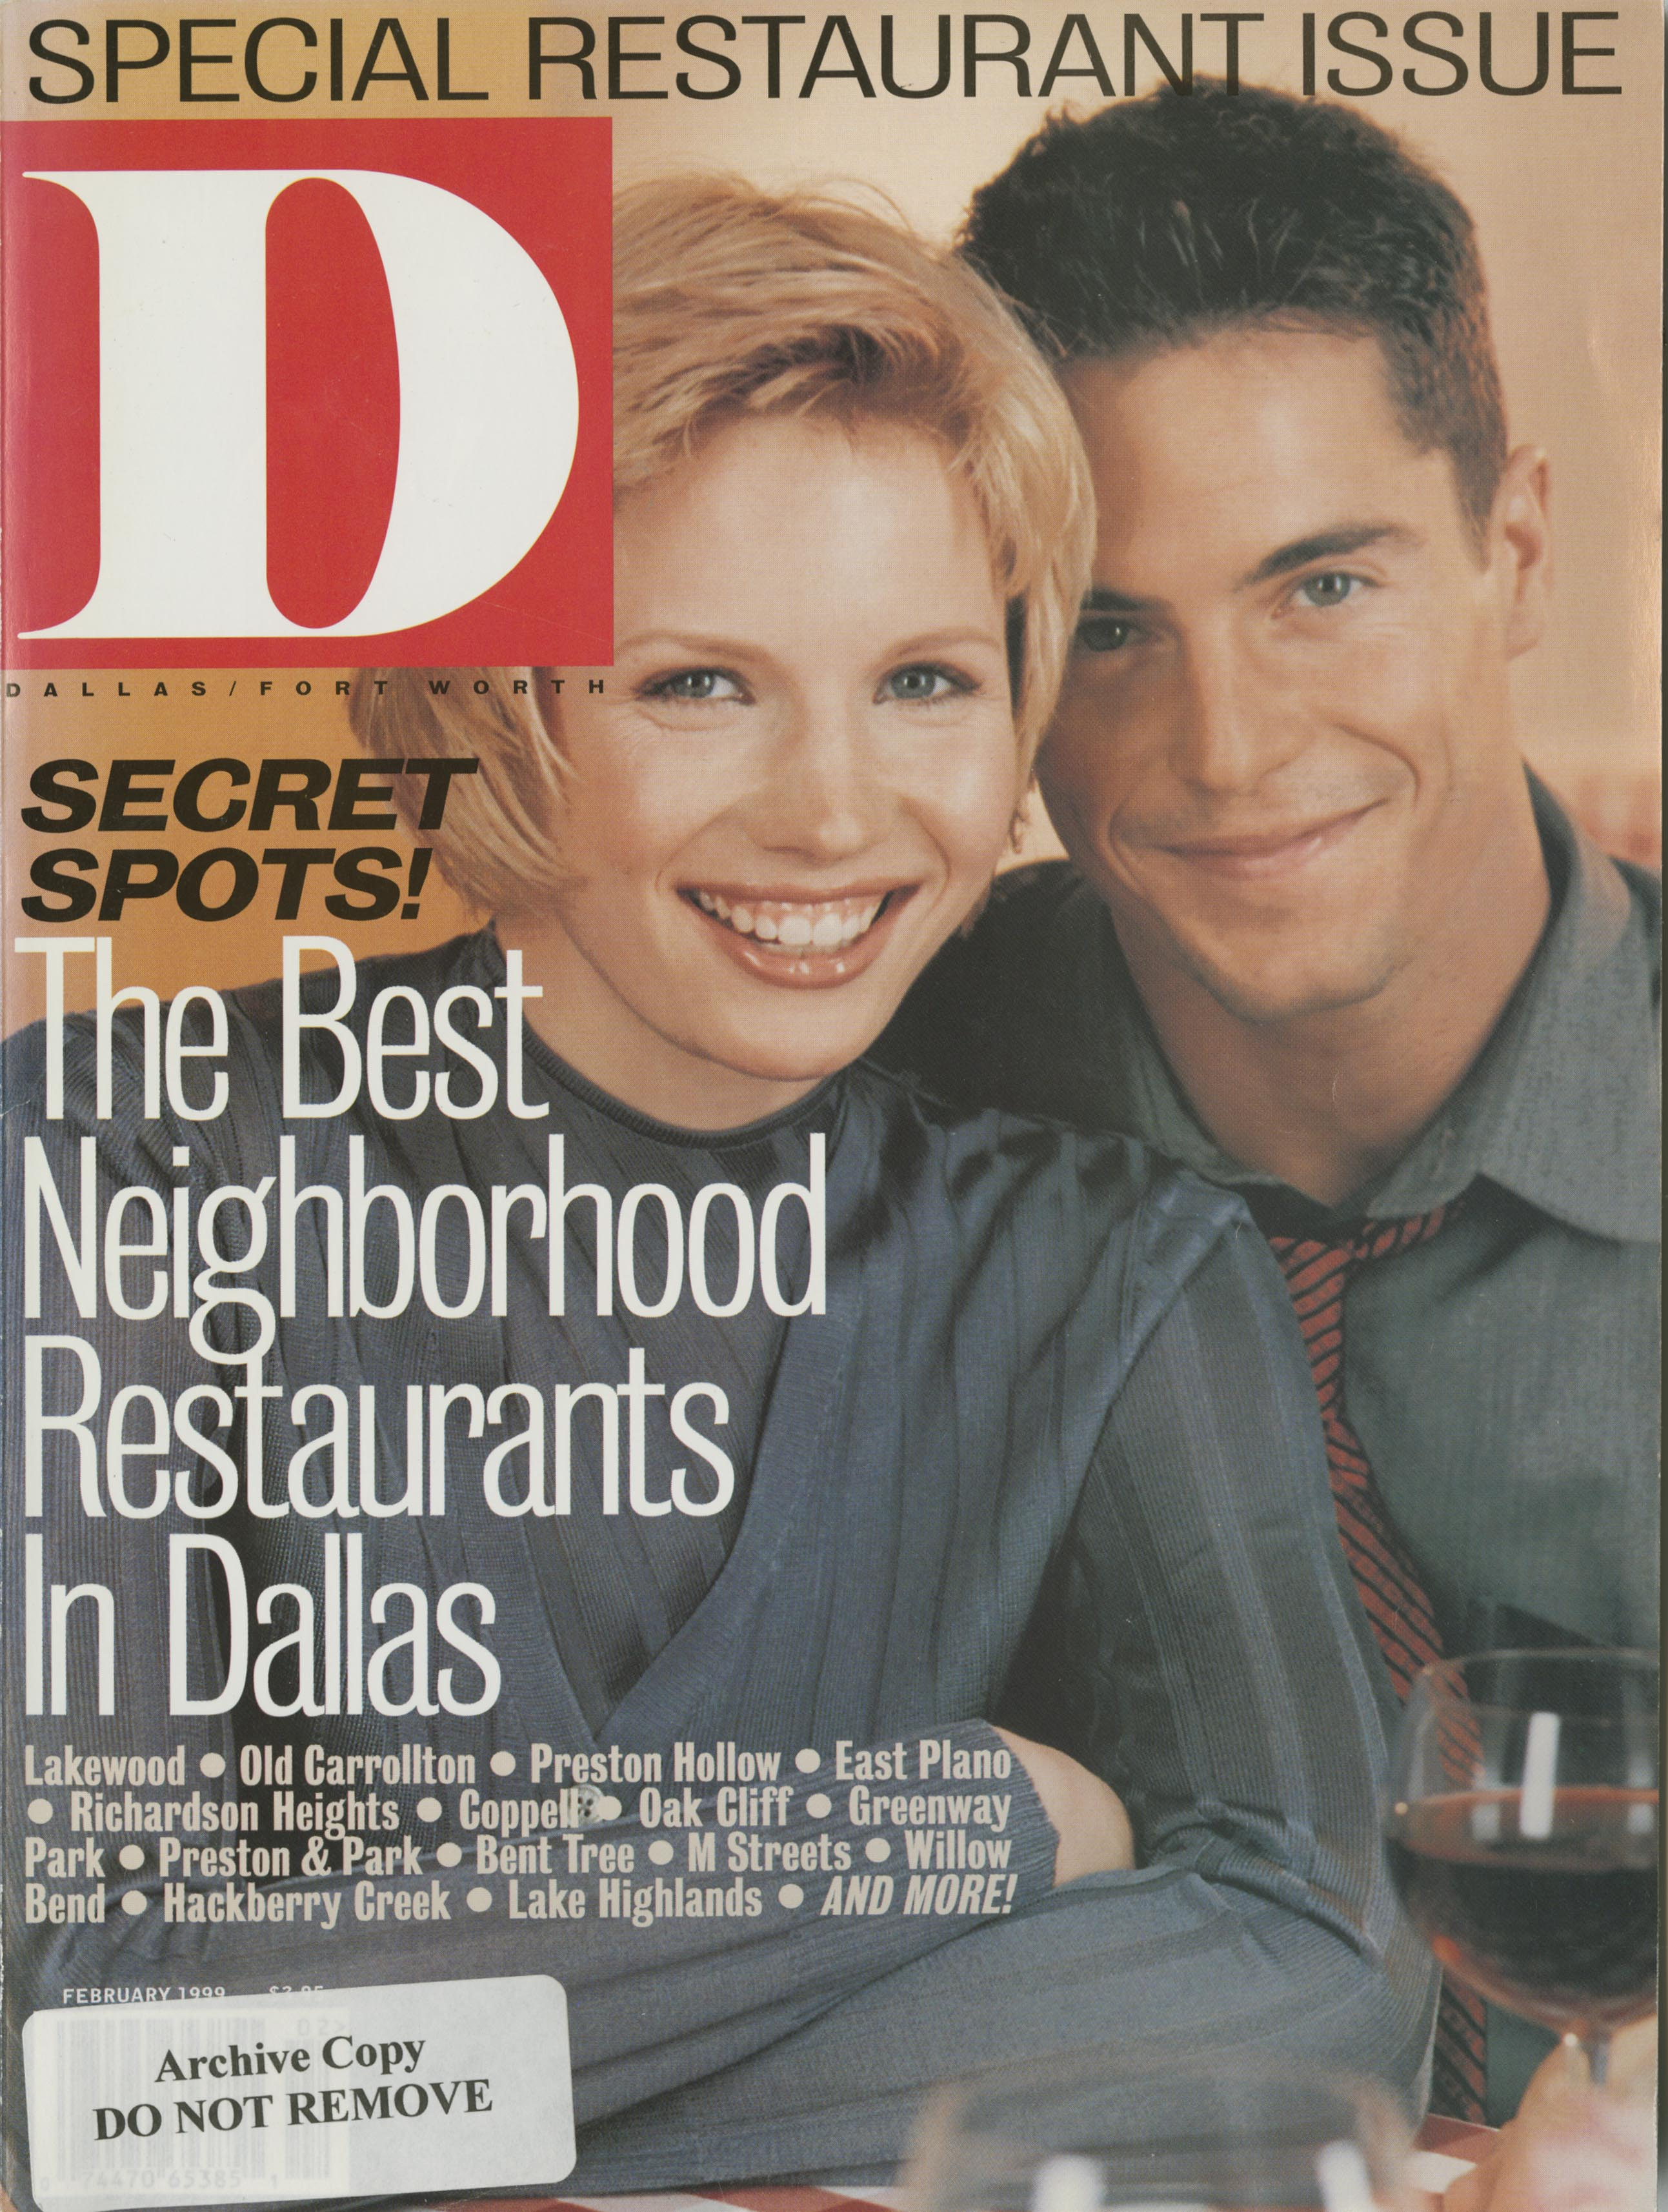 February 1999 cover